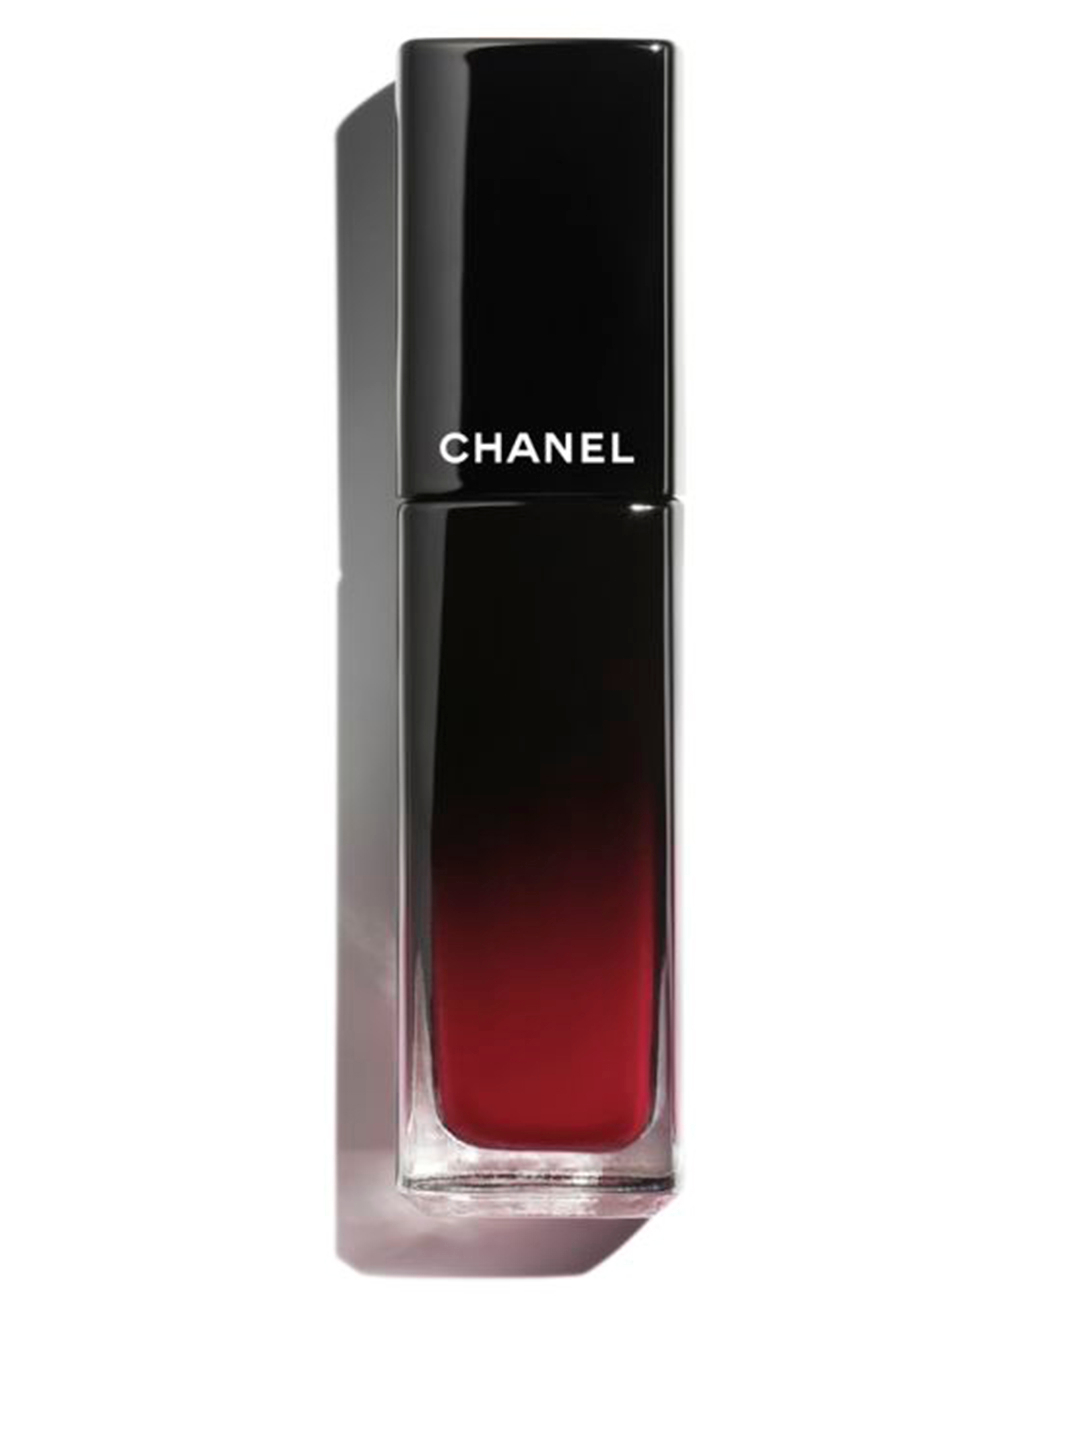 CHANEL Ultrawear Shine Liquid Lip Colour CHANEL Brown